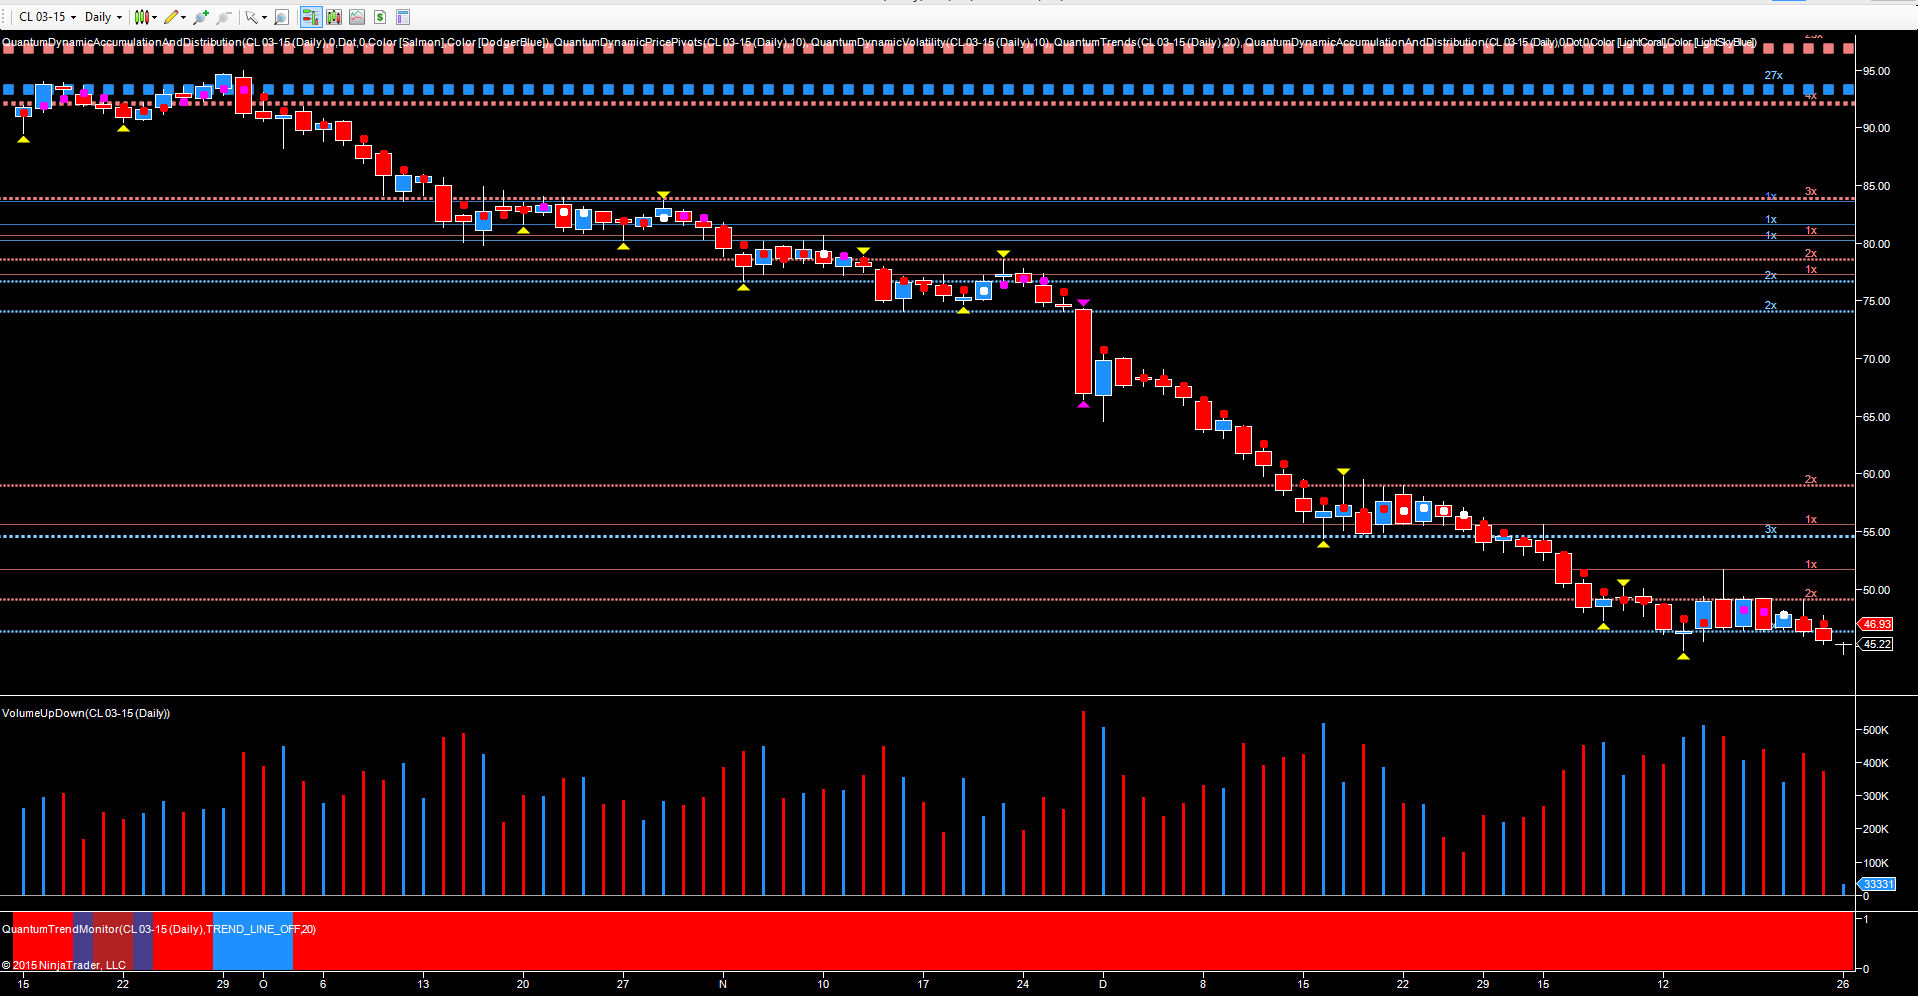 WTI March futures - daily chart